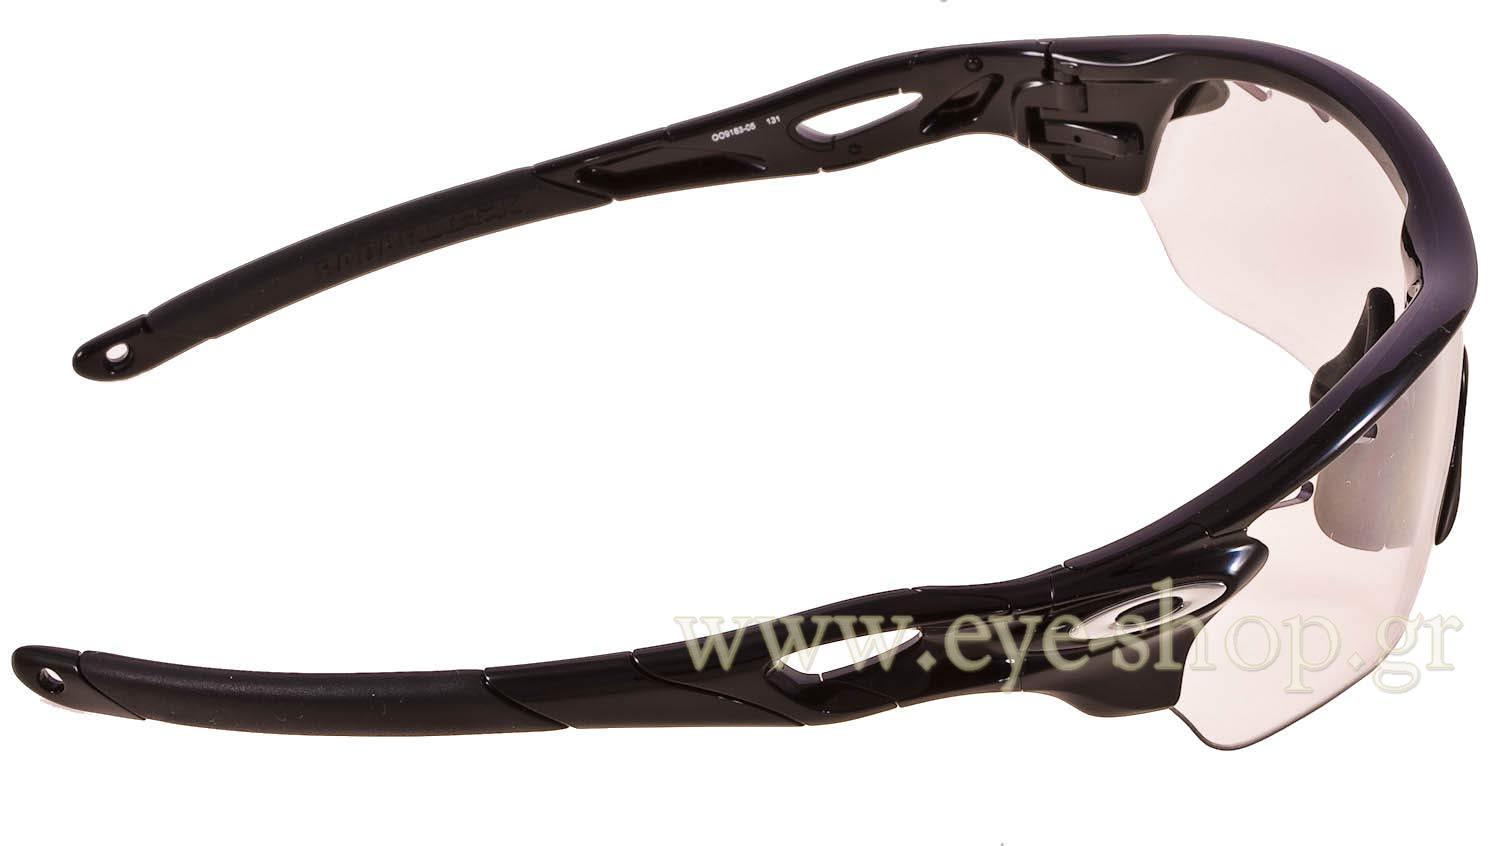 Oakley μοντέλο Radarlock Edge 9183 στο χρώμα 9183 05 black iridium Photochromic